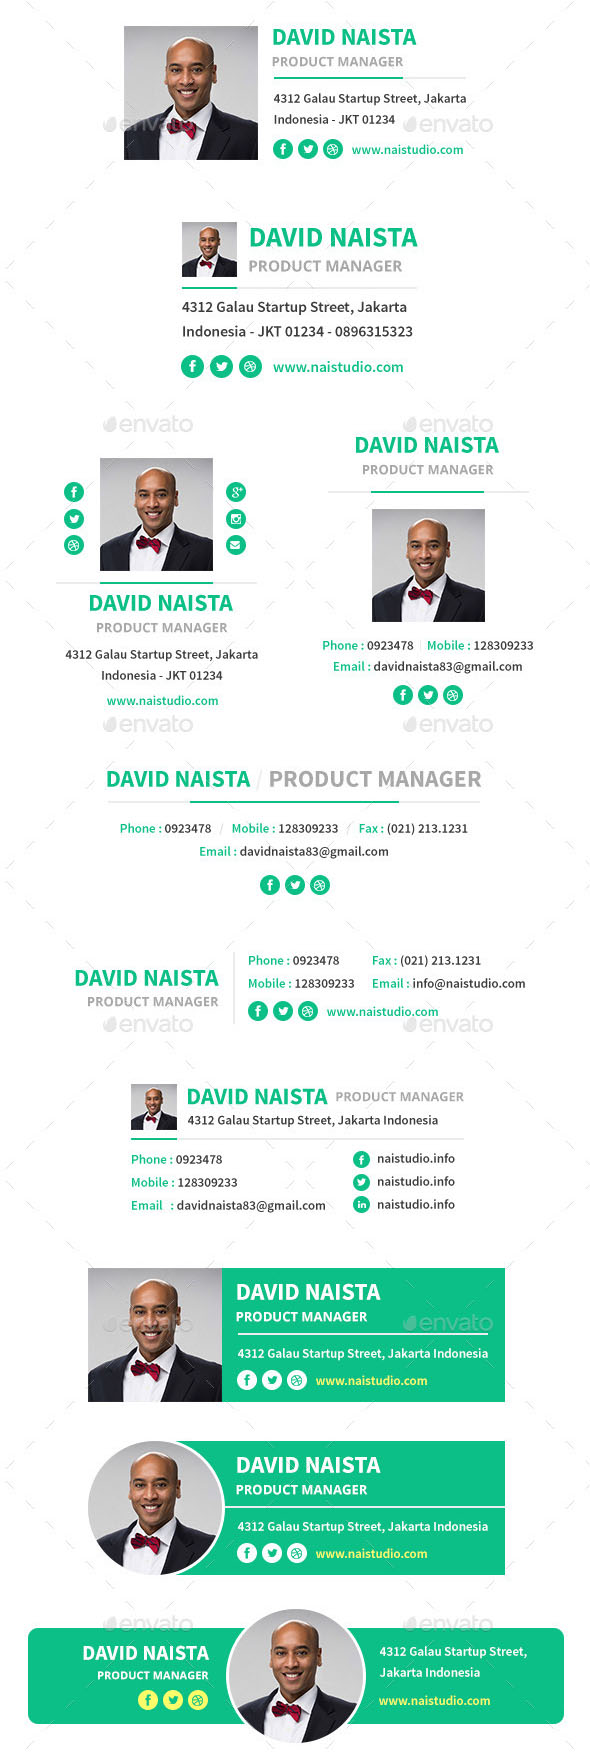 10×07 Email Signature Template